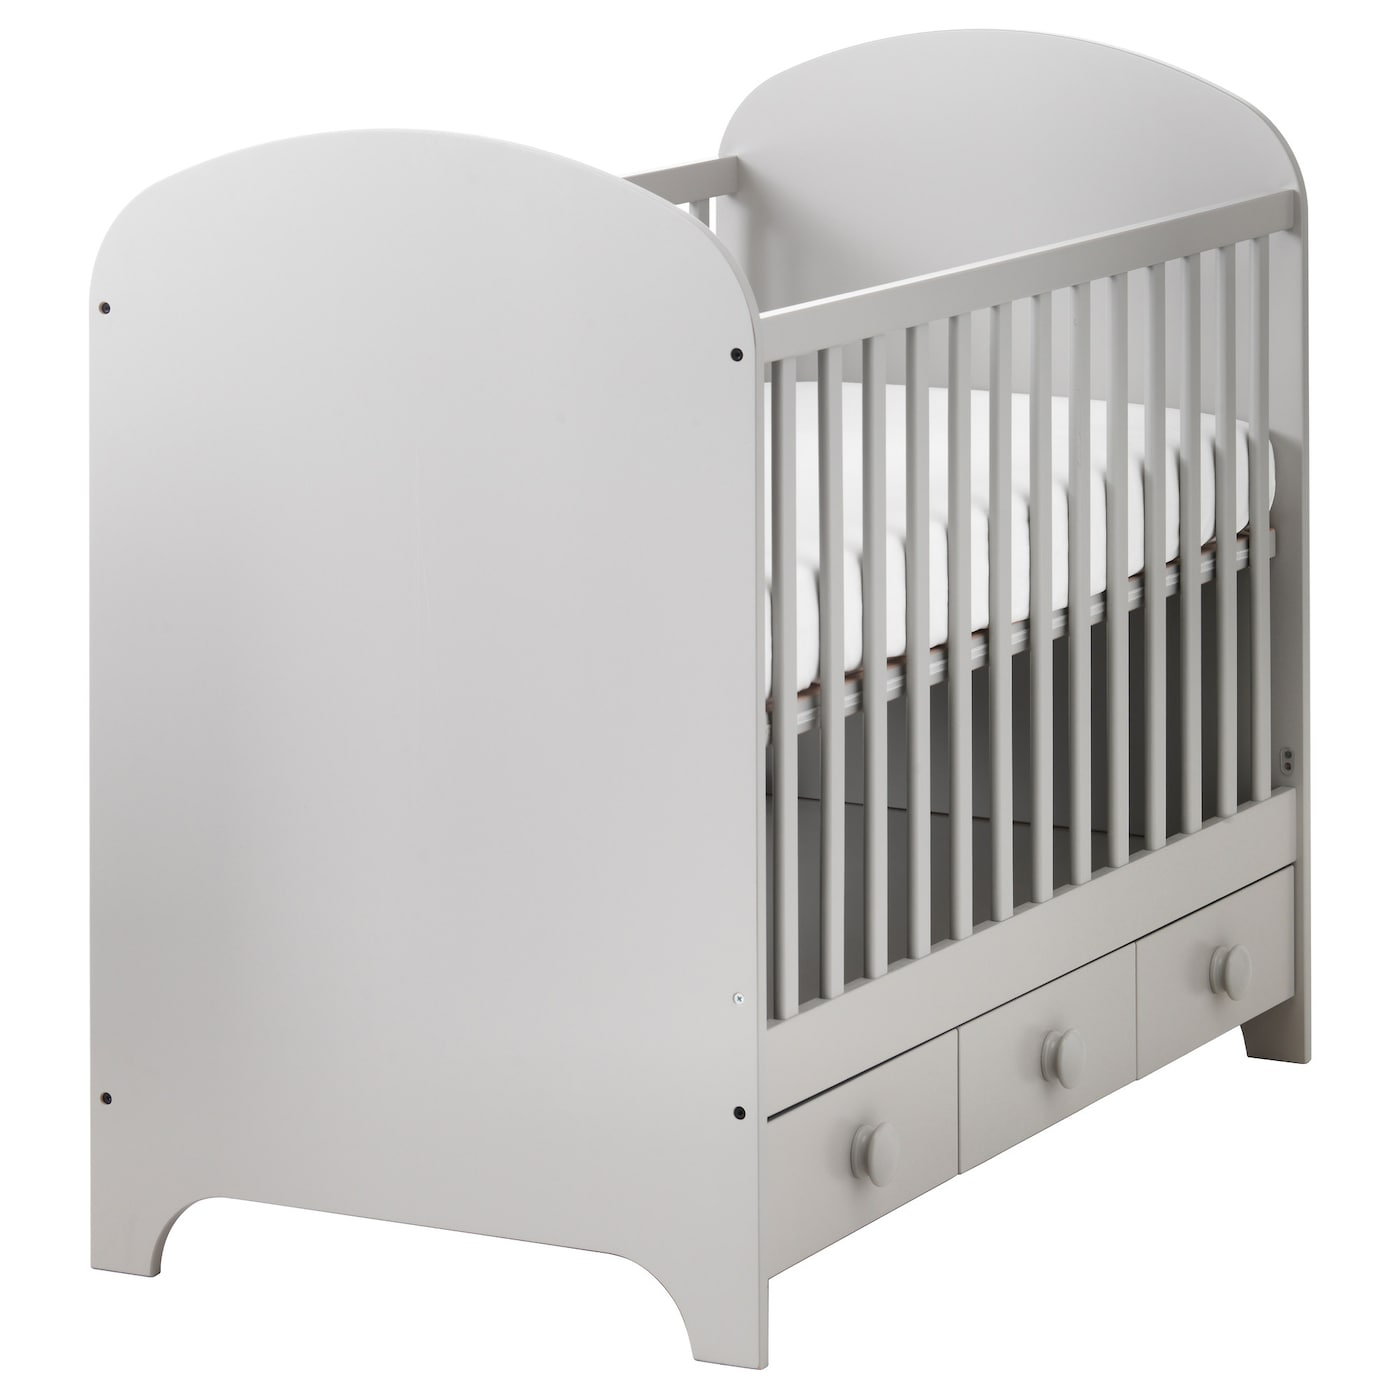 Perfekt IKEA GONATT Cot The Cot Base Can Be Placed At Two Different Heights.